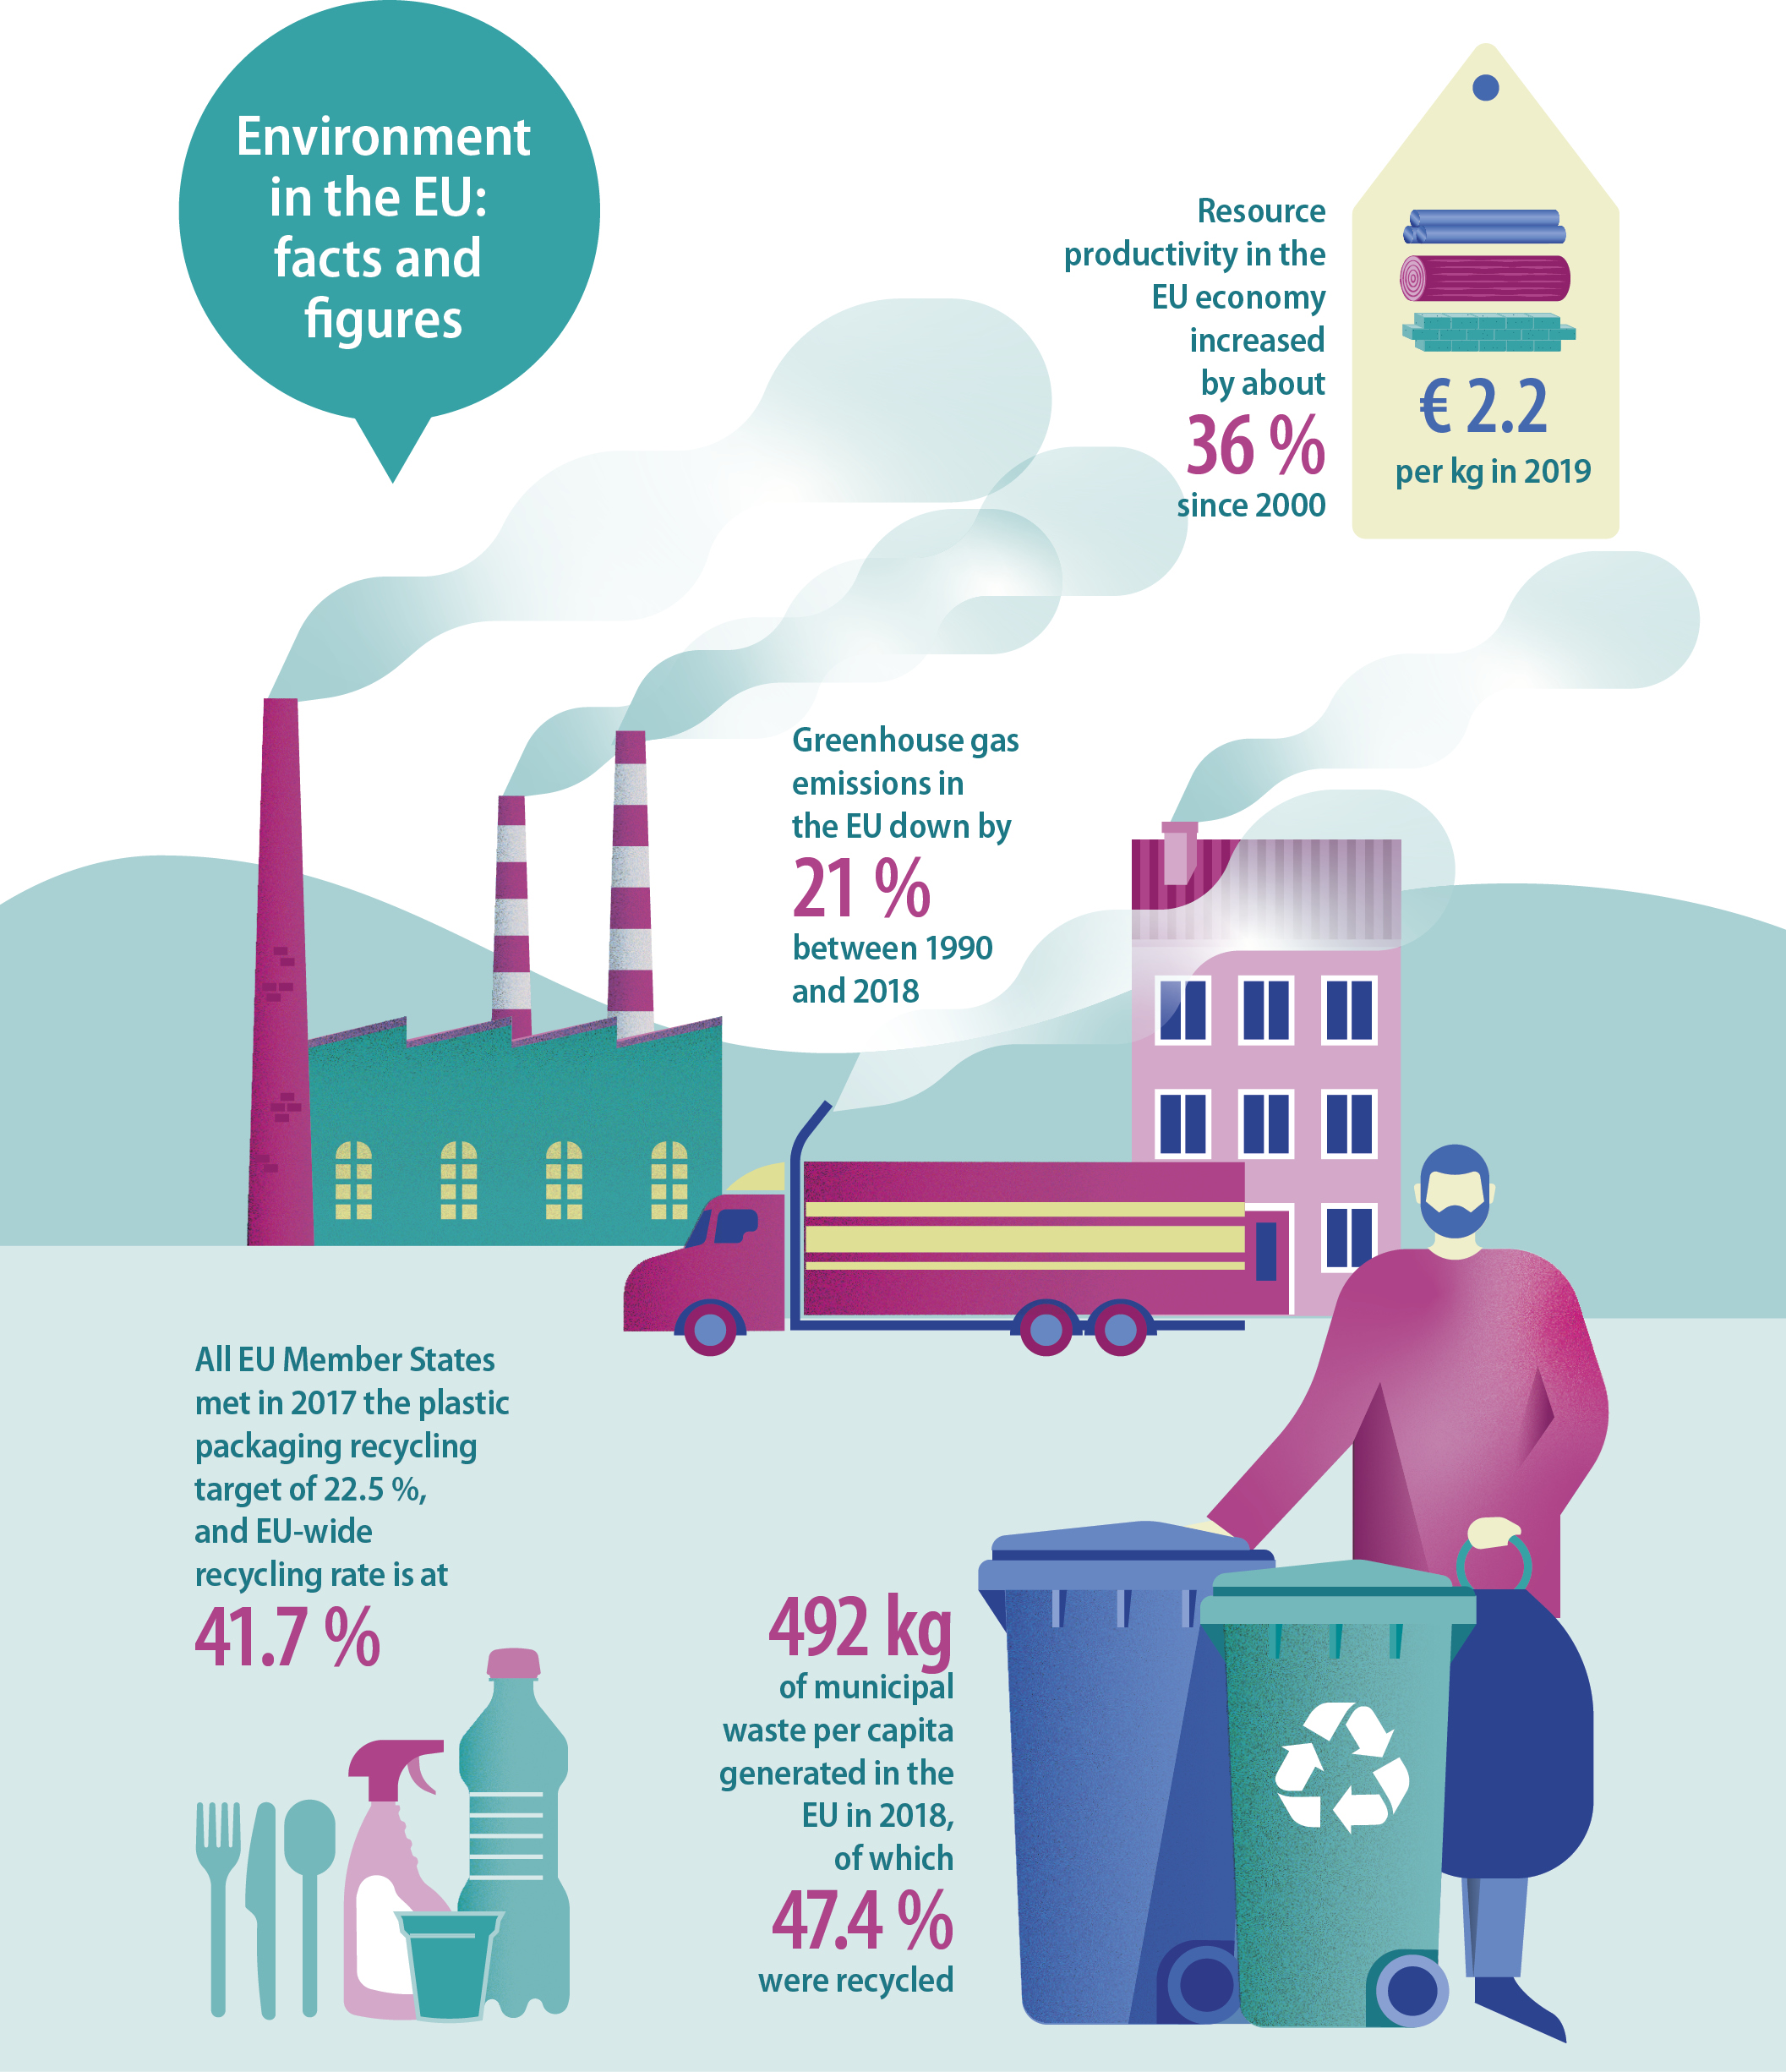 Environment in the EU: facts and figures